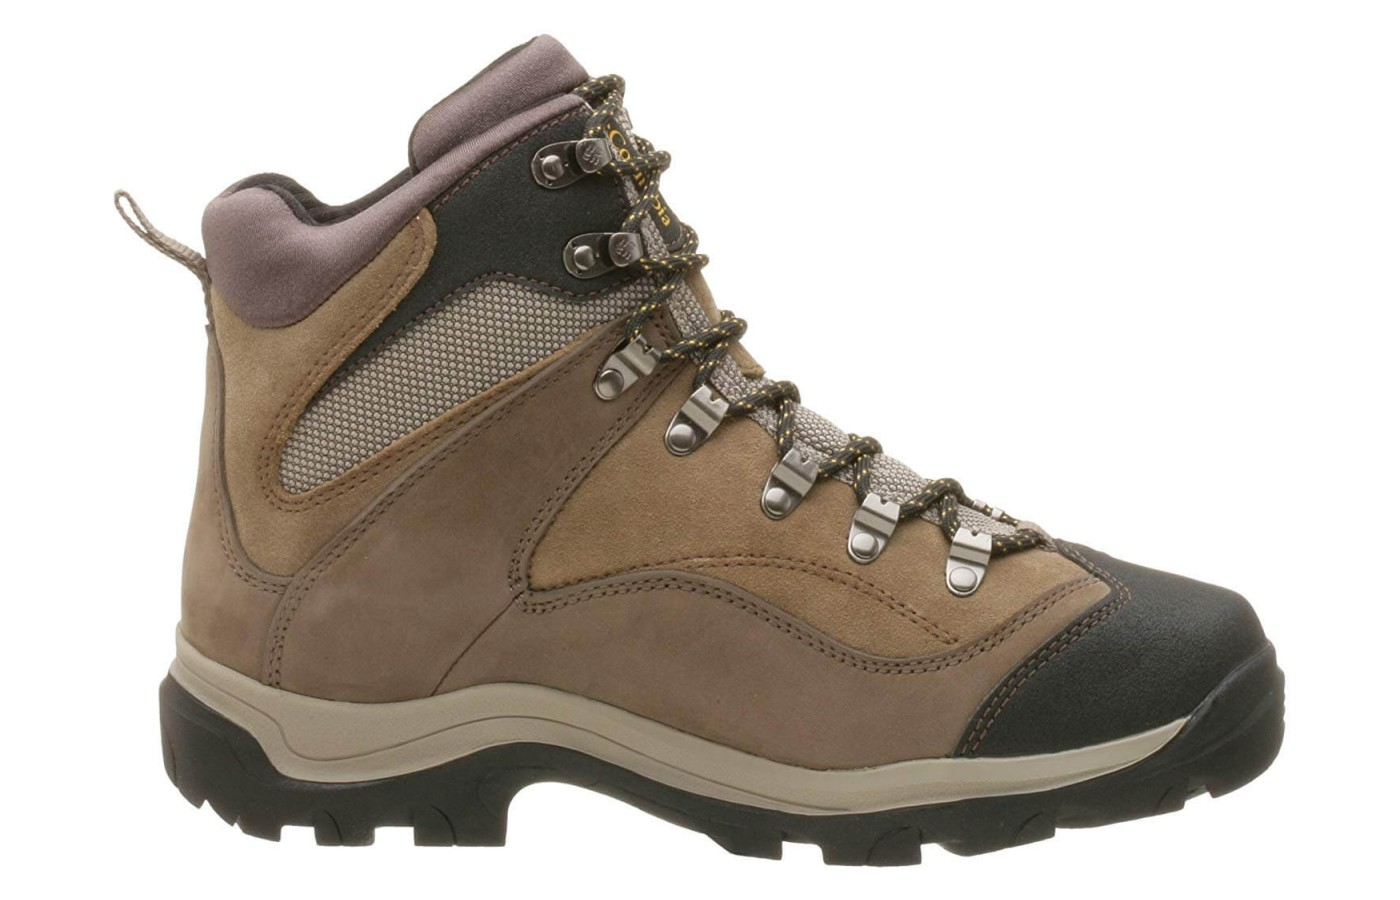 Columbia Frontier Peak GTX Right